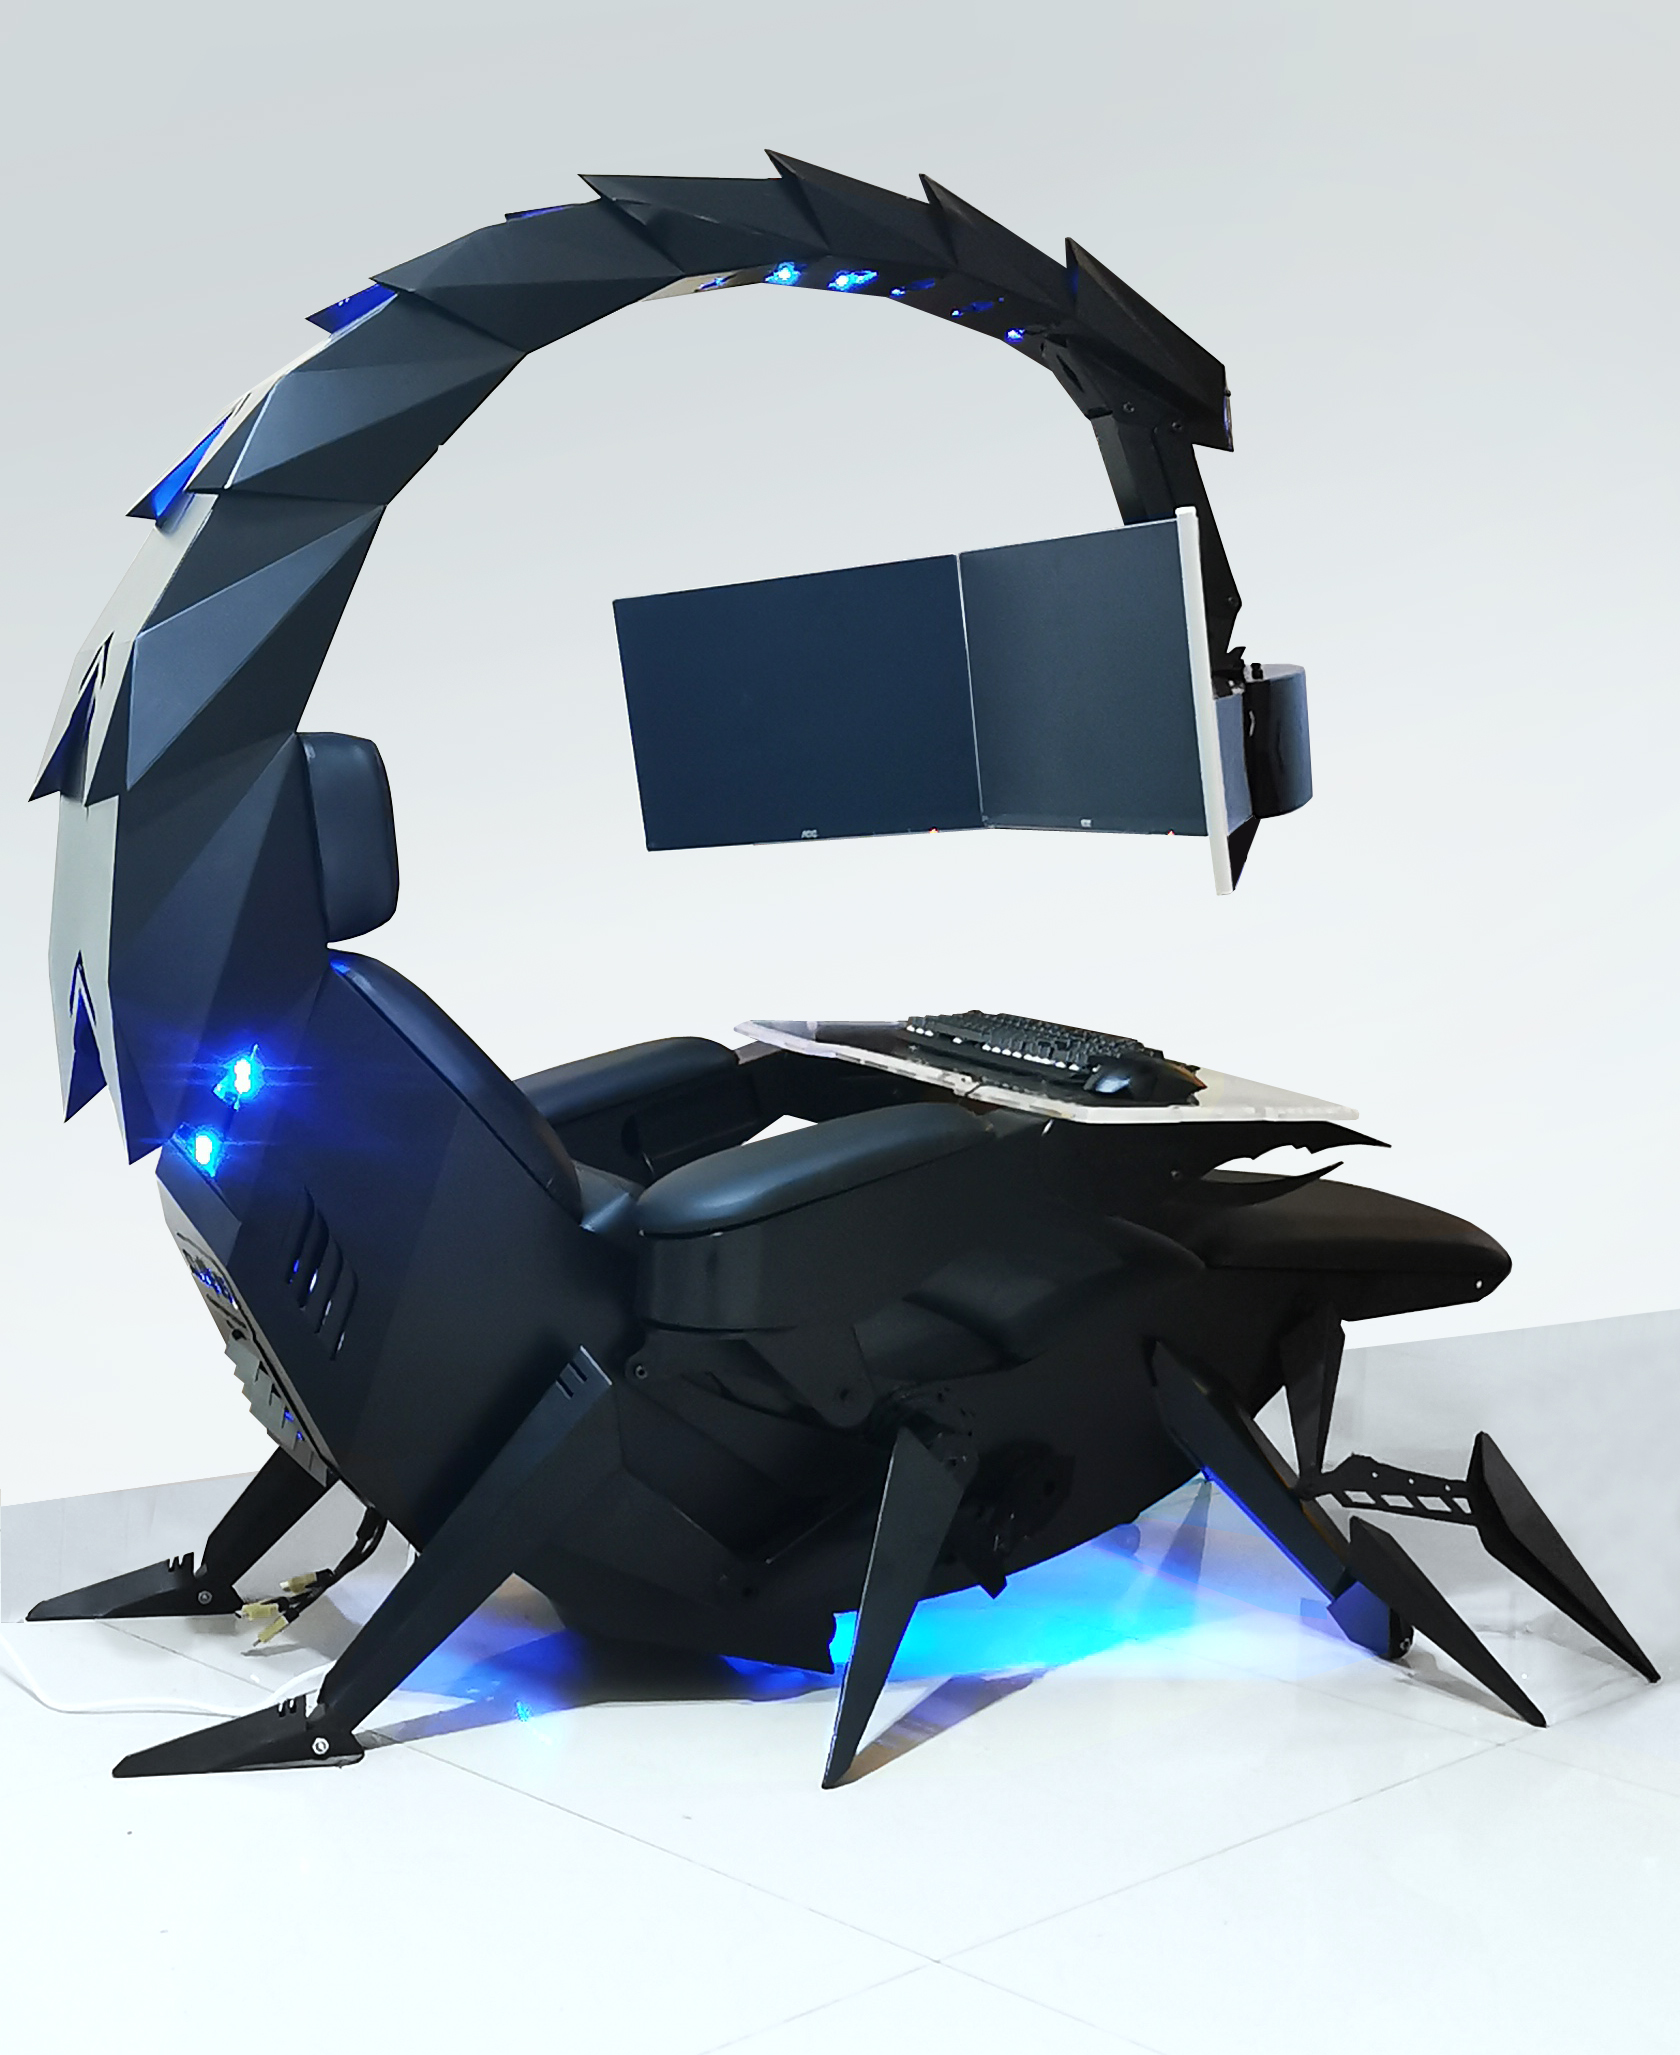 Deluxe computer chair recliner gaming chair cockpit zero gravity titling support 1 -3 monitors CLUVENS Scorpion chair